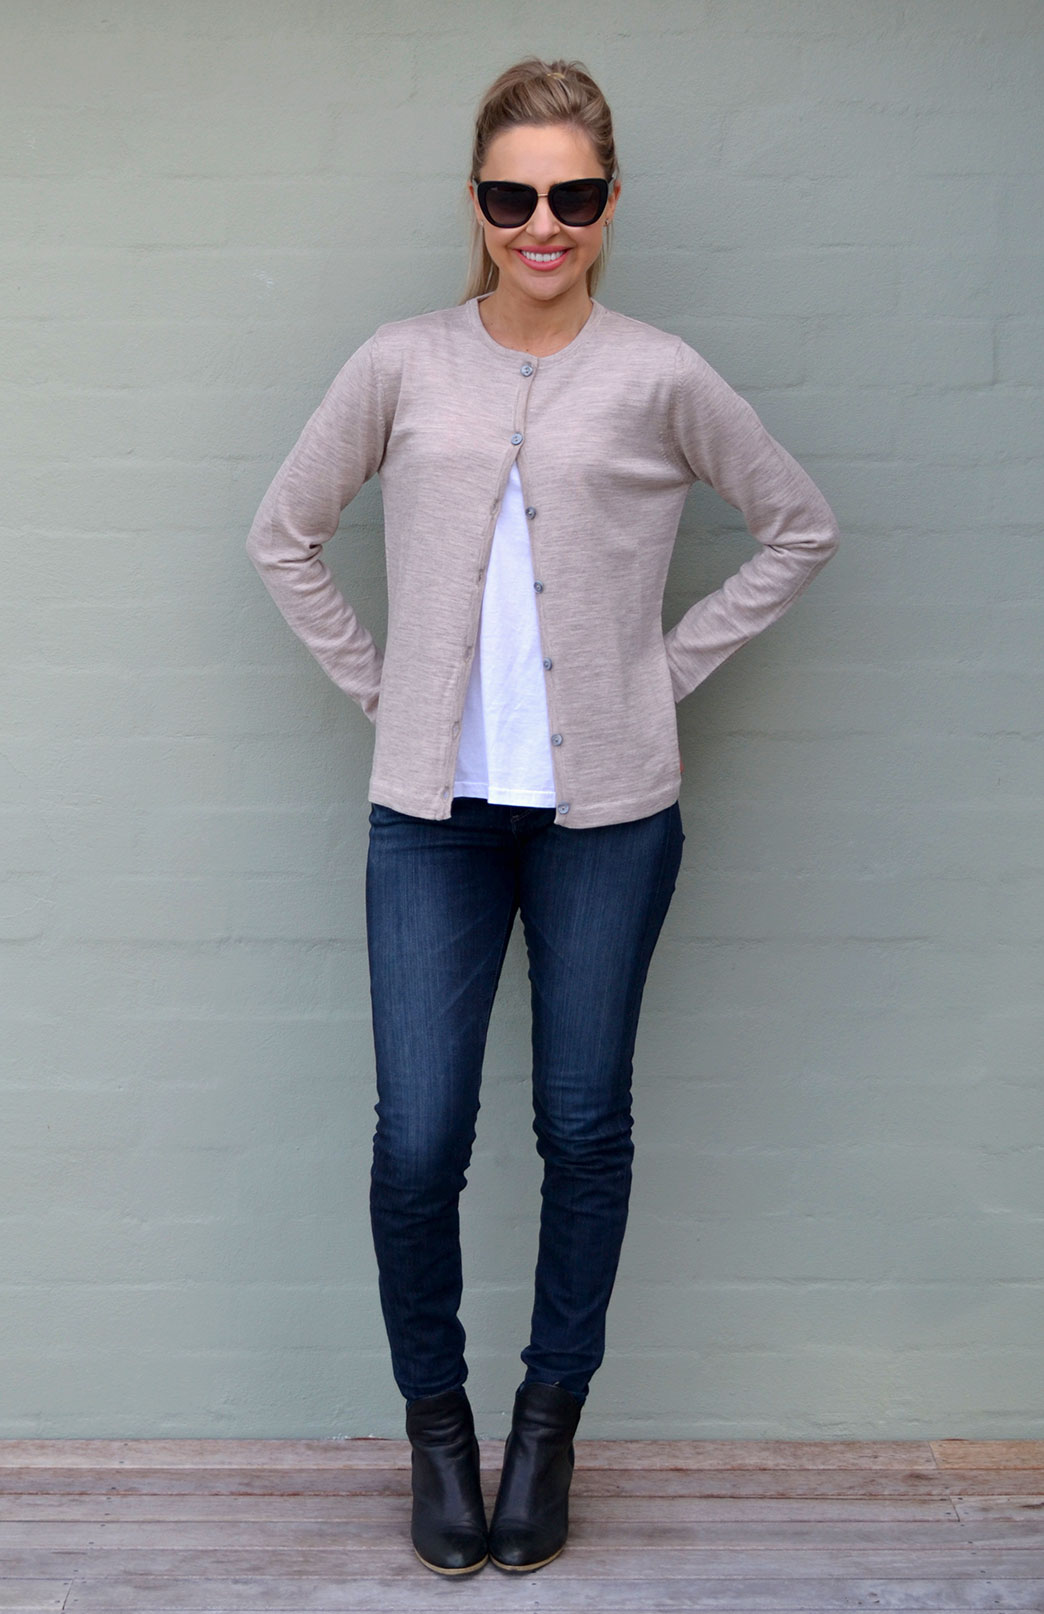 Crew Neck Button Cardigan - Women's Oatmeal Knitted Merino Wool Classic Crew Neck Long Sleeve Button Cardigan - Smitten Merino Tasmania Australia